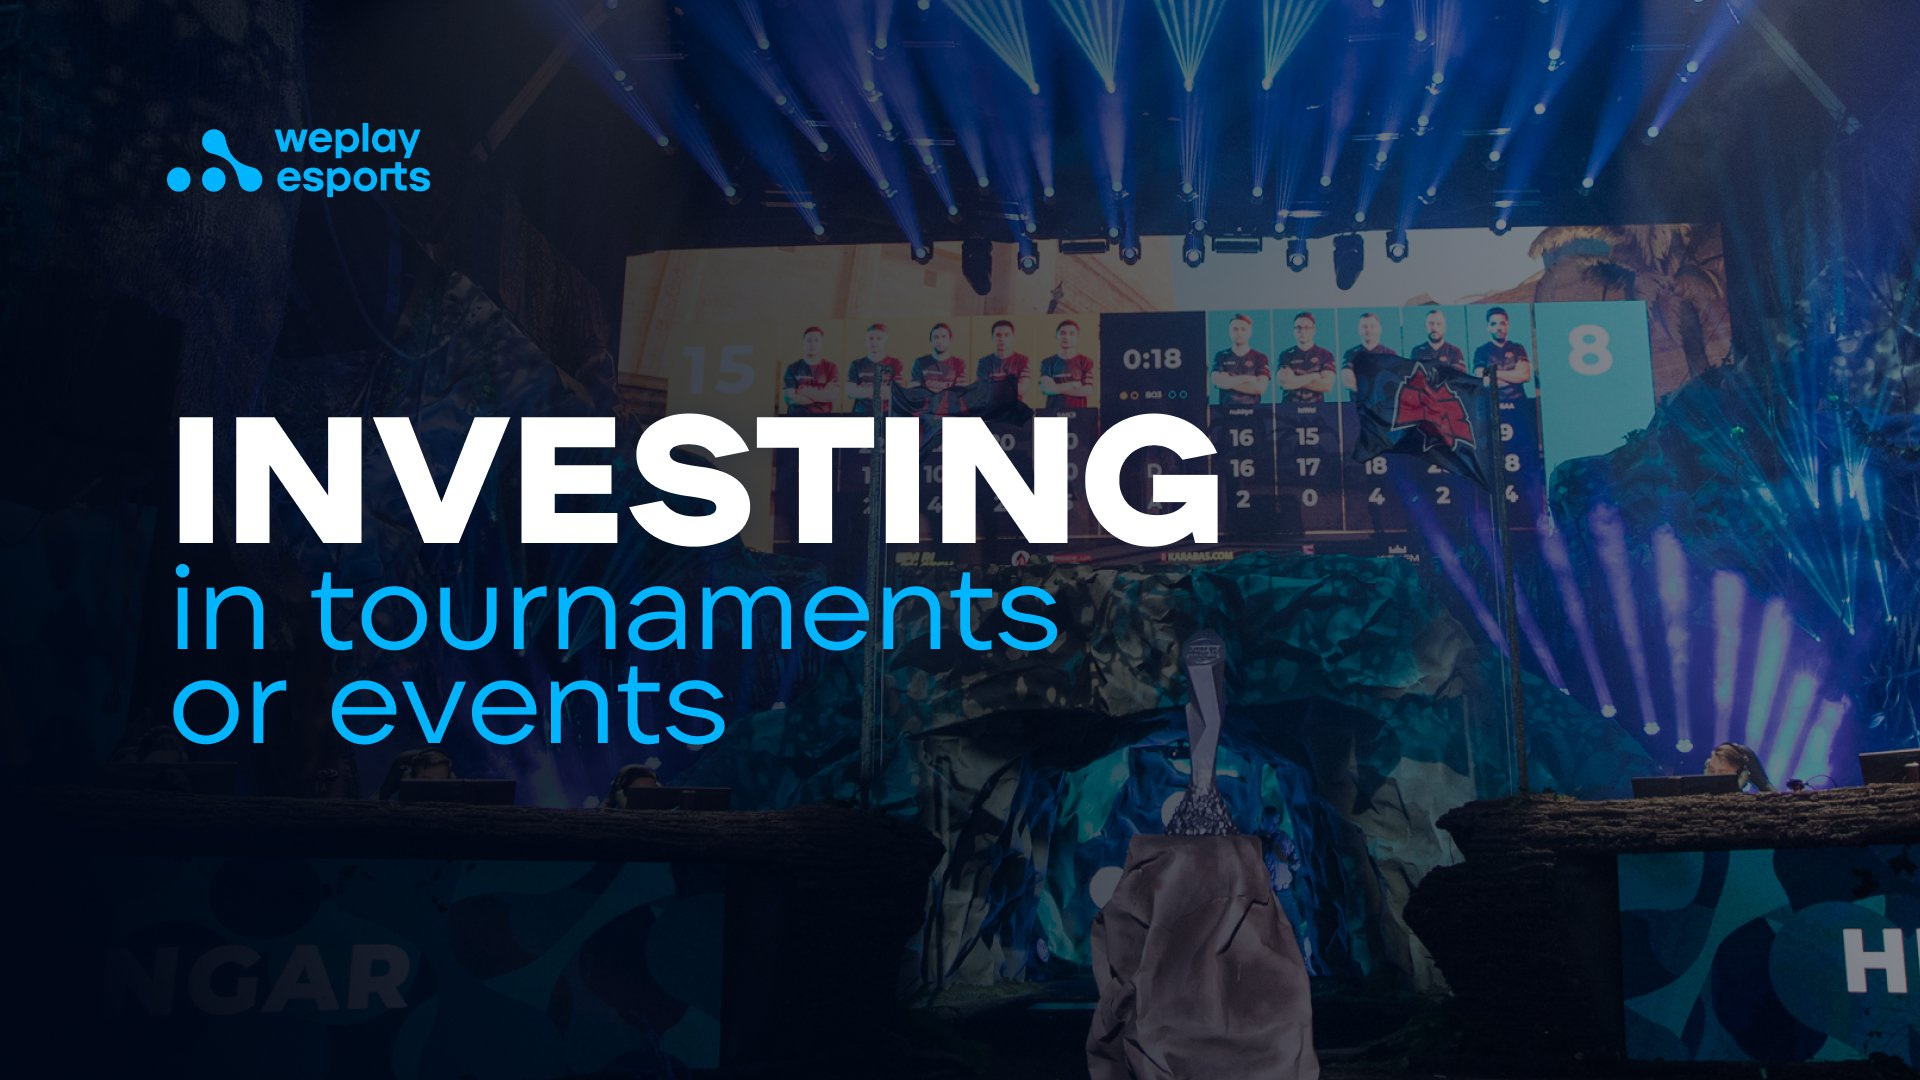 Investing in tournaments or events